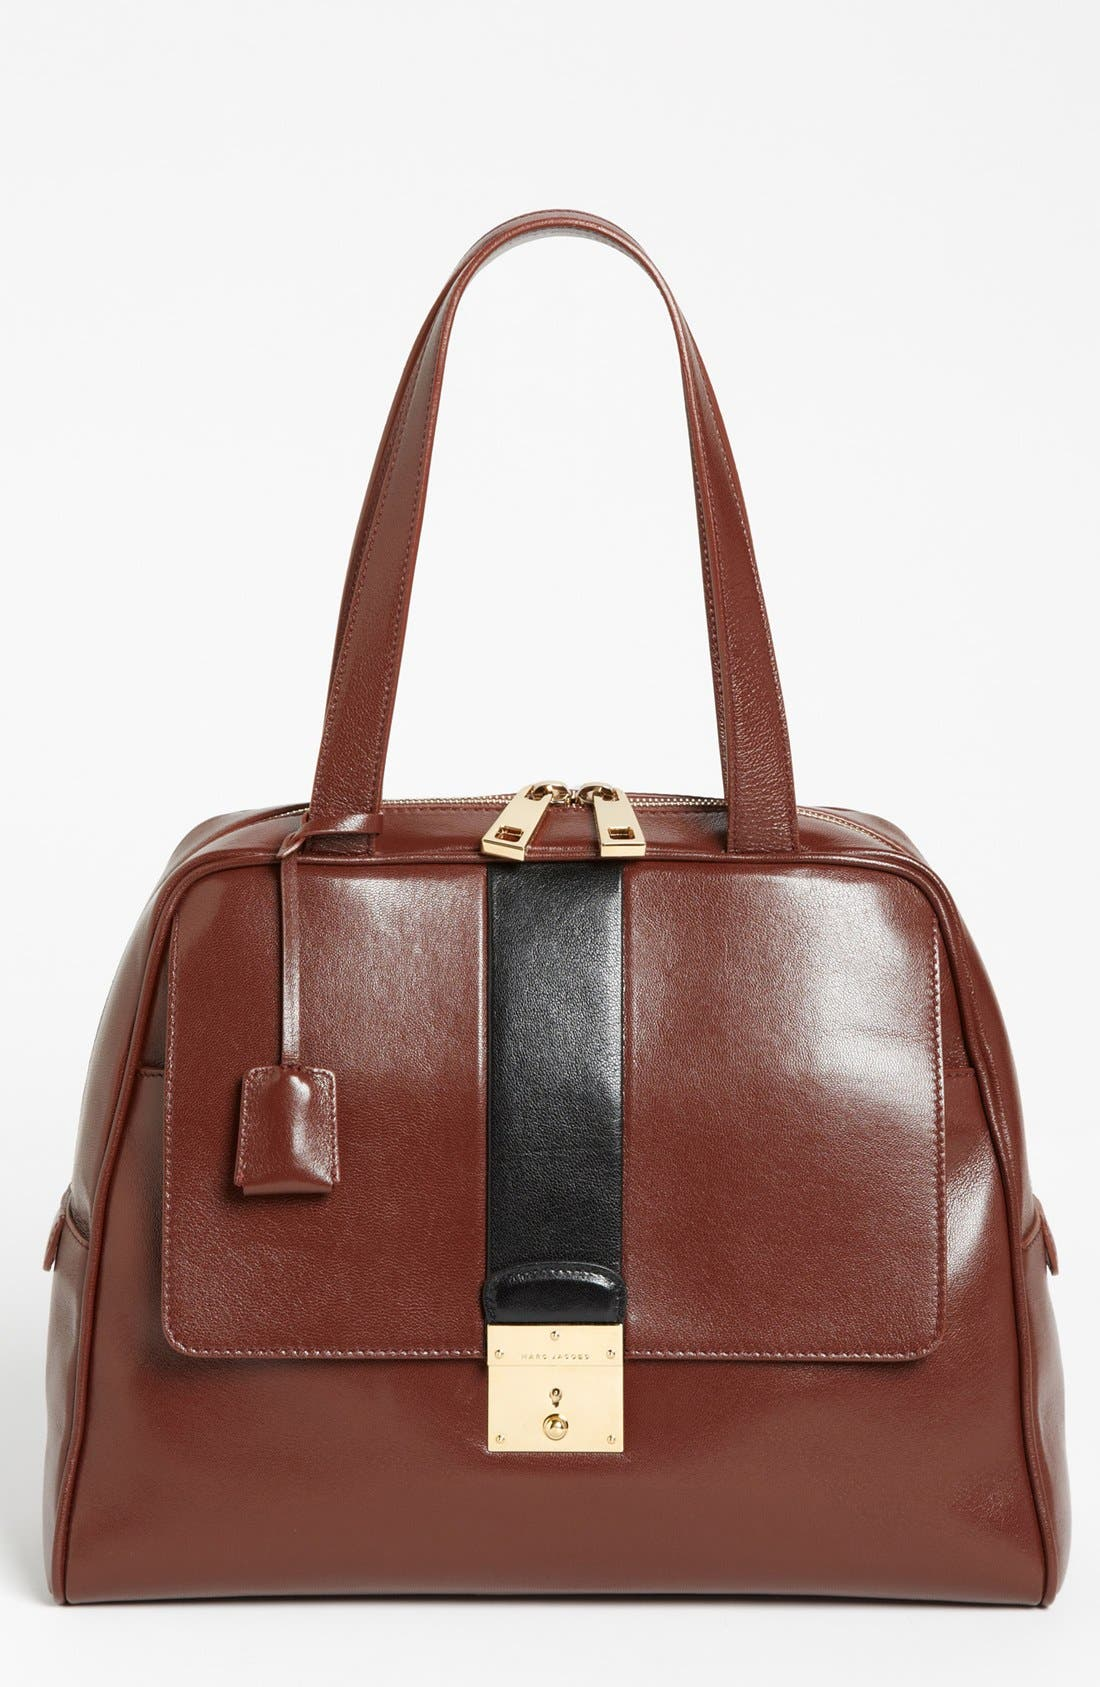 Main Image - MARC JACOBS 'Checkers - Charlie' Satchel